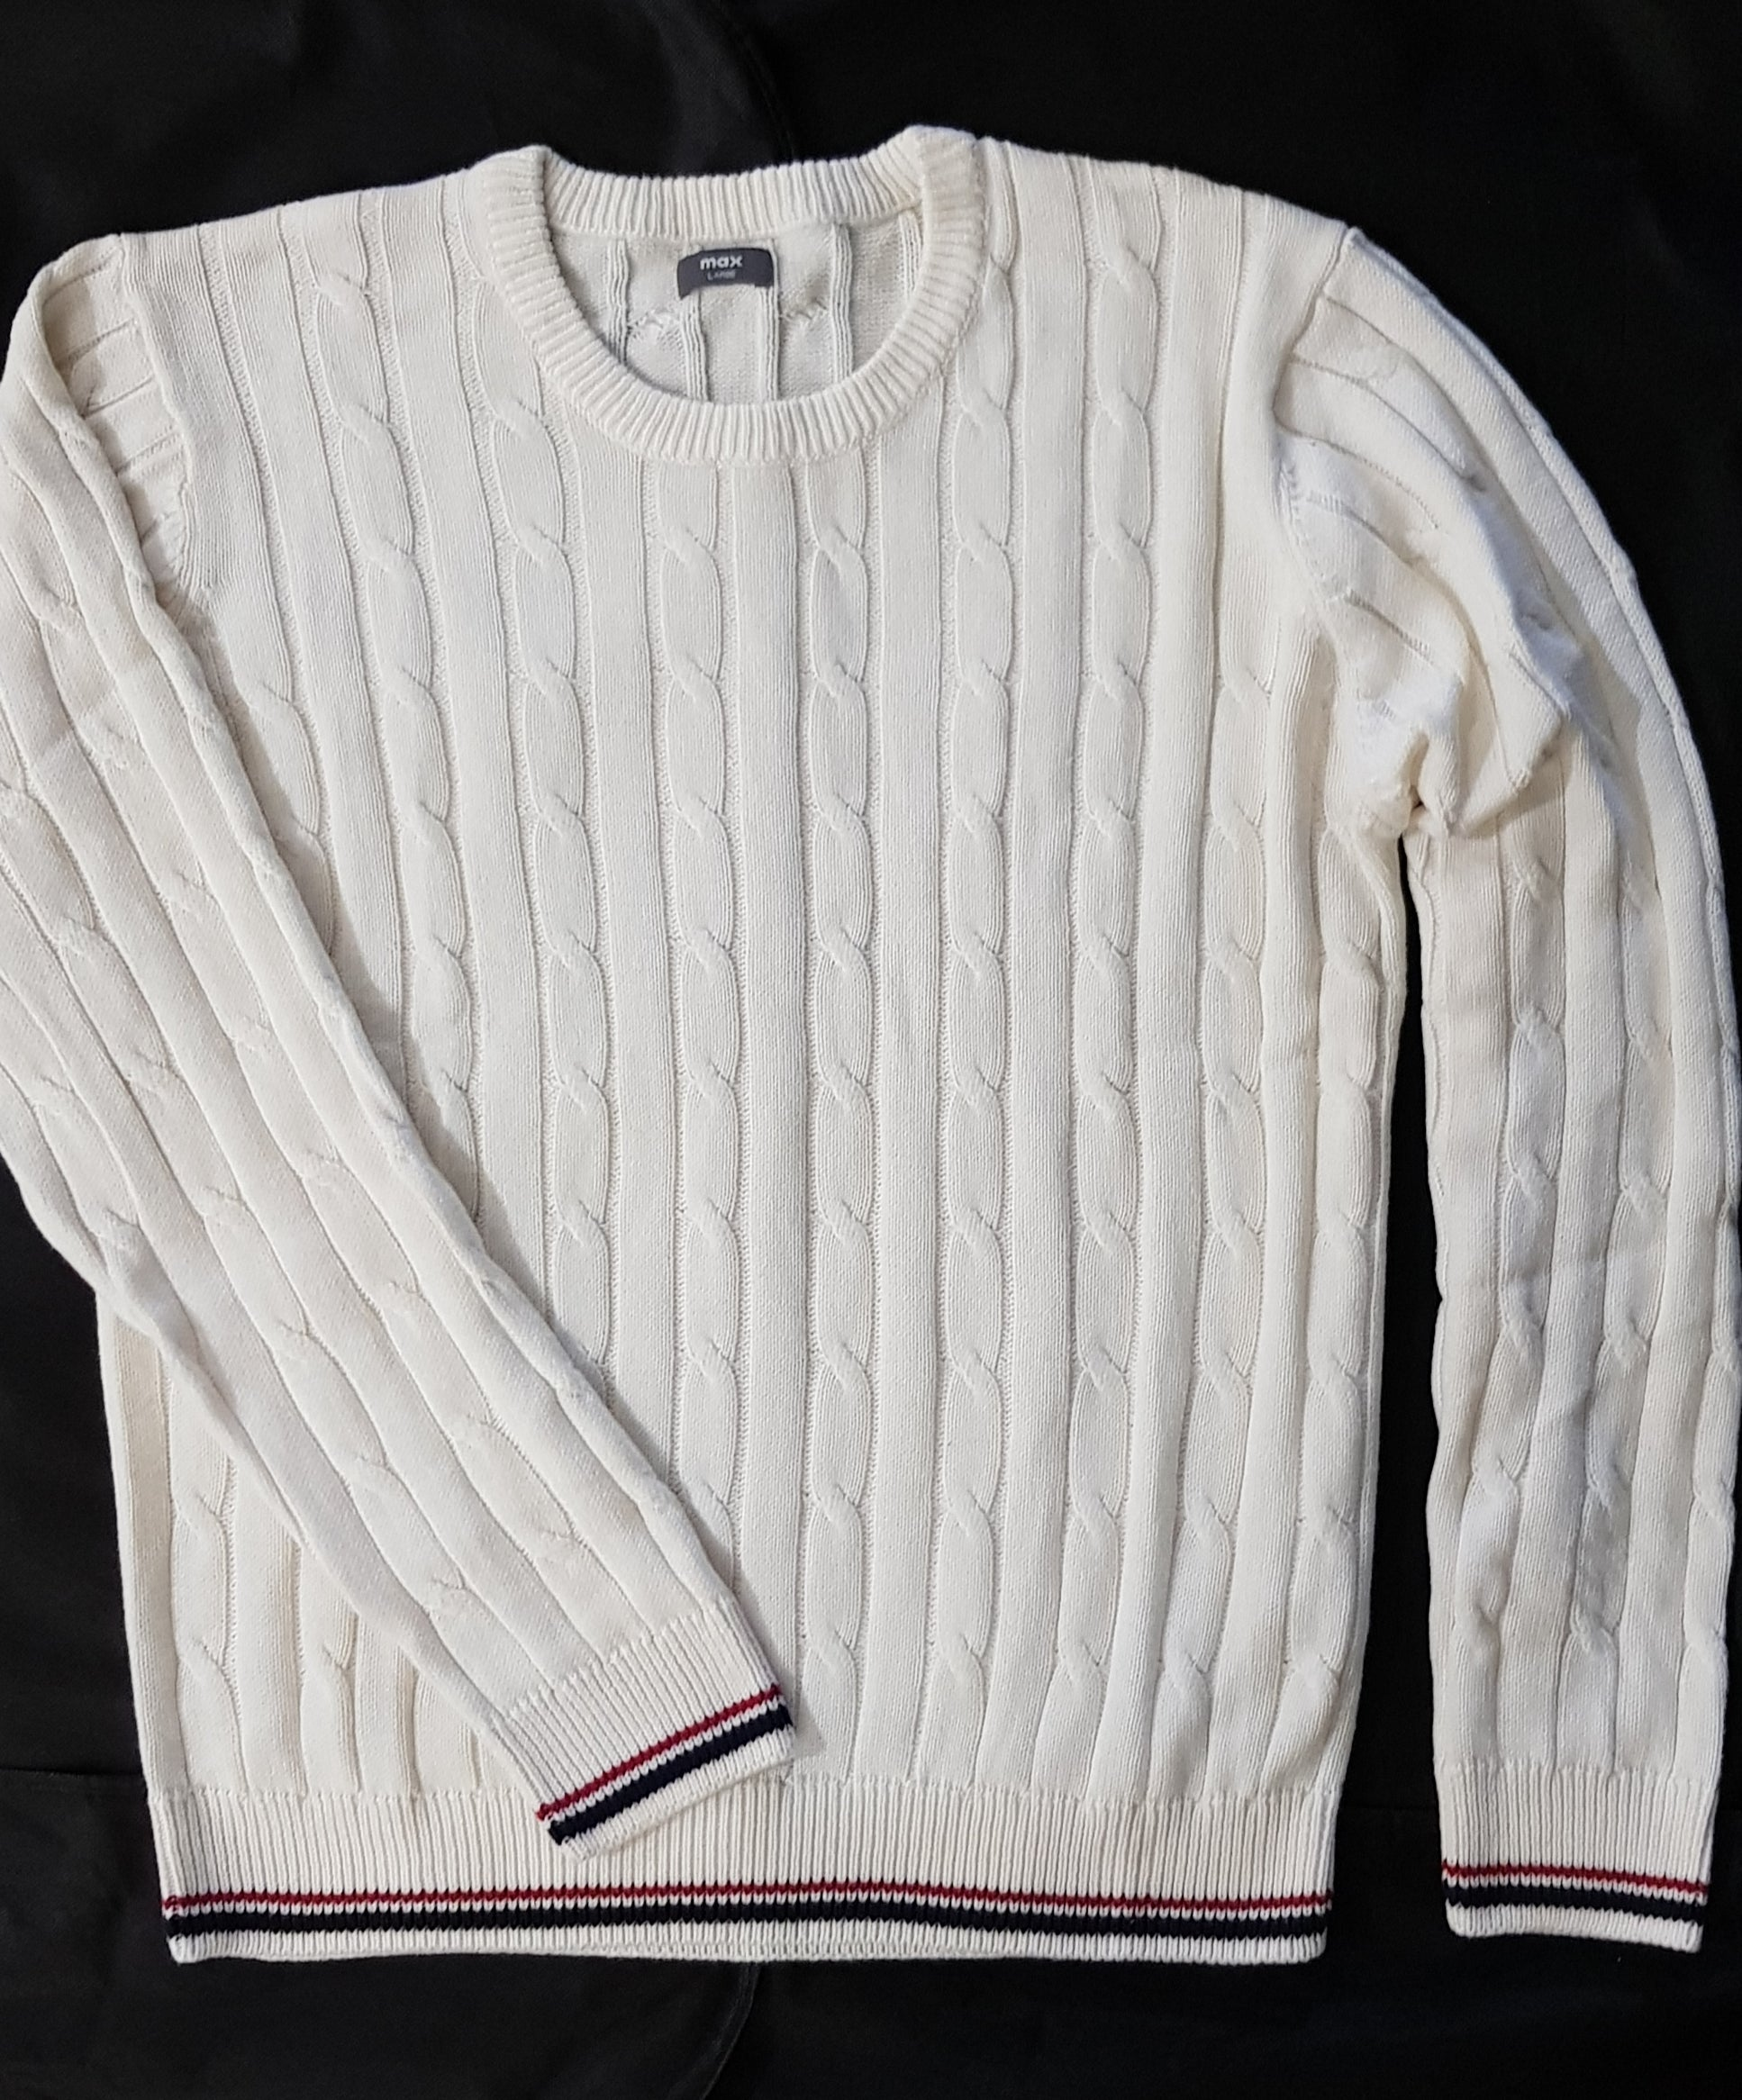 CREW NECK CABLE KNIT COTTON JUMPER